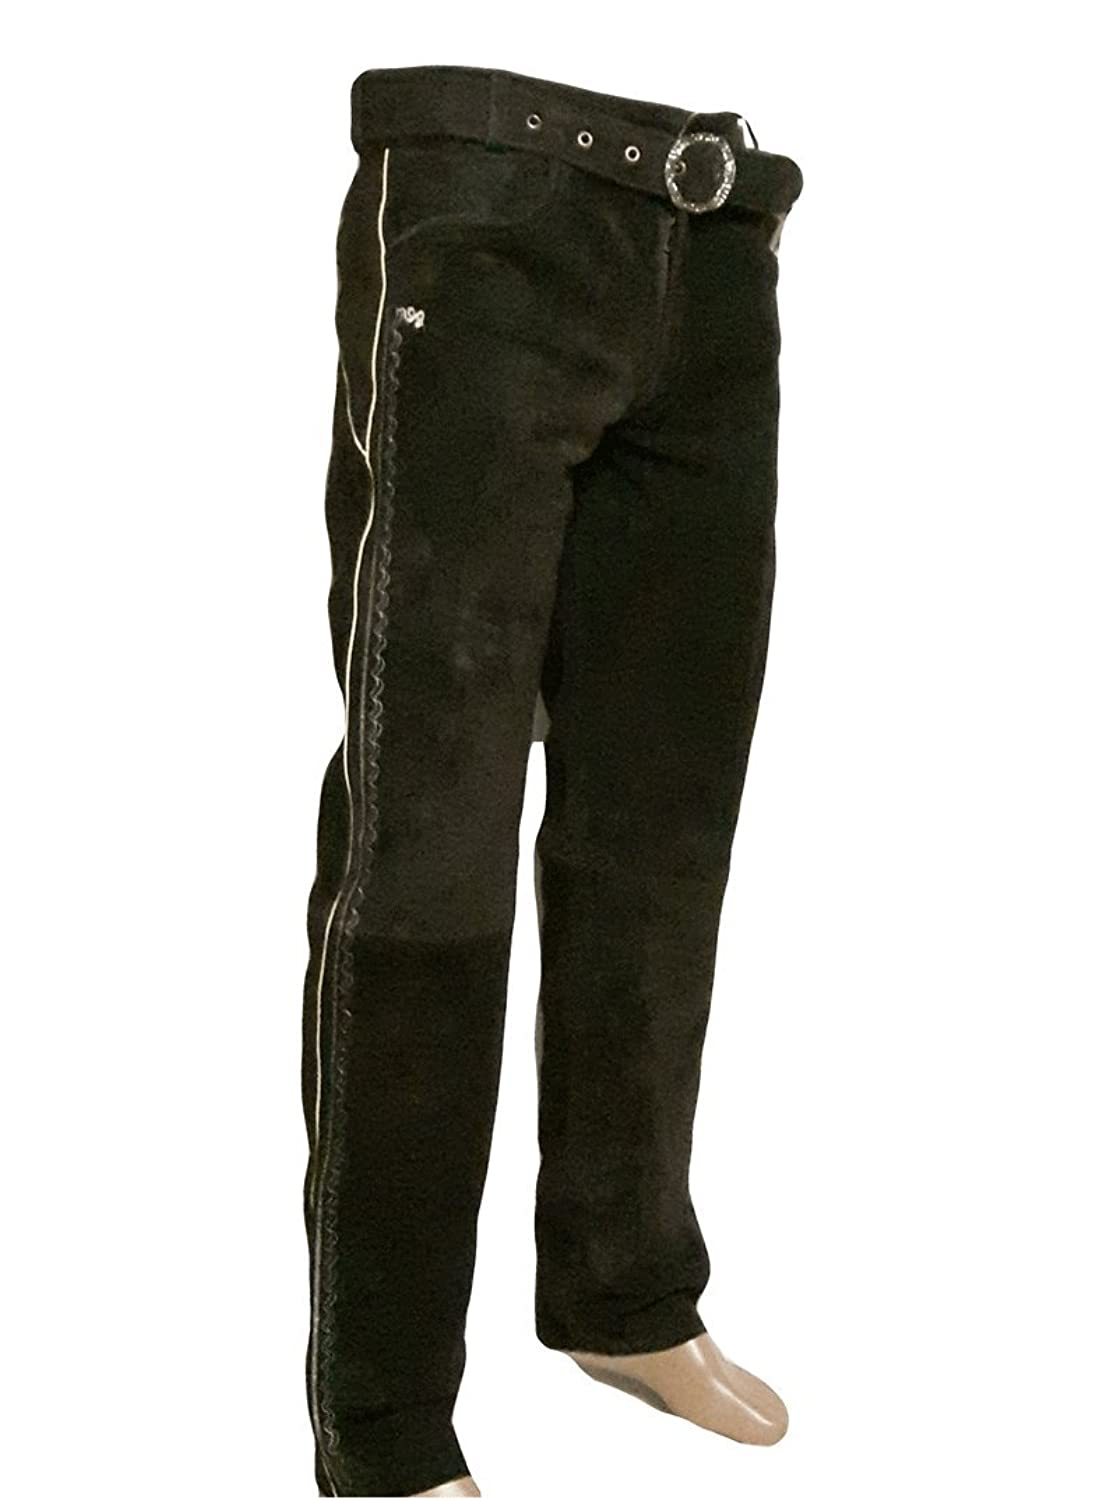 Trachtenhose Men's Straight Leg Trousers Brown Brown